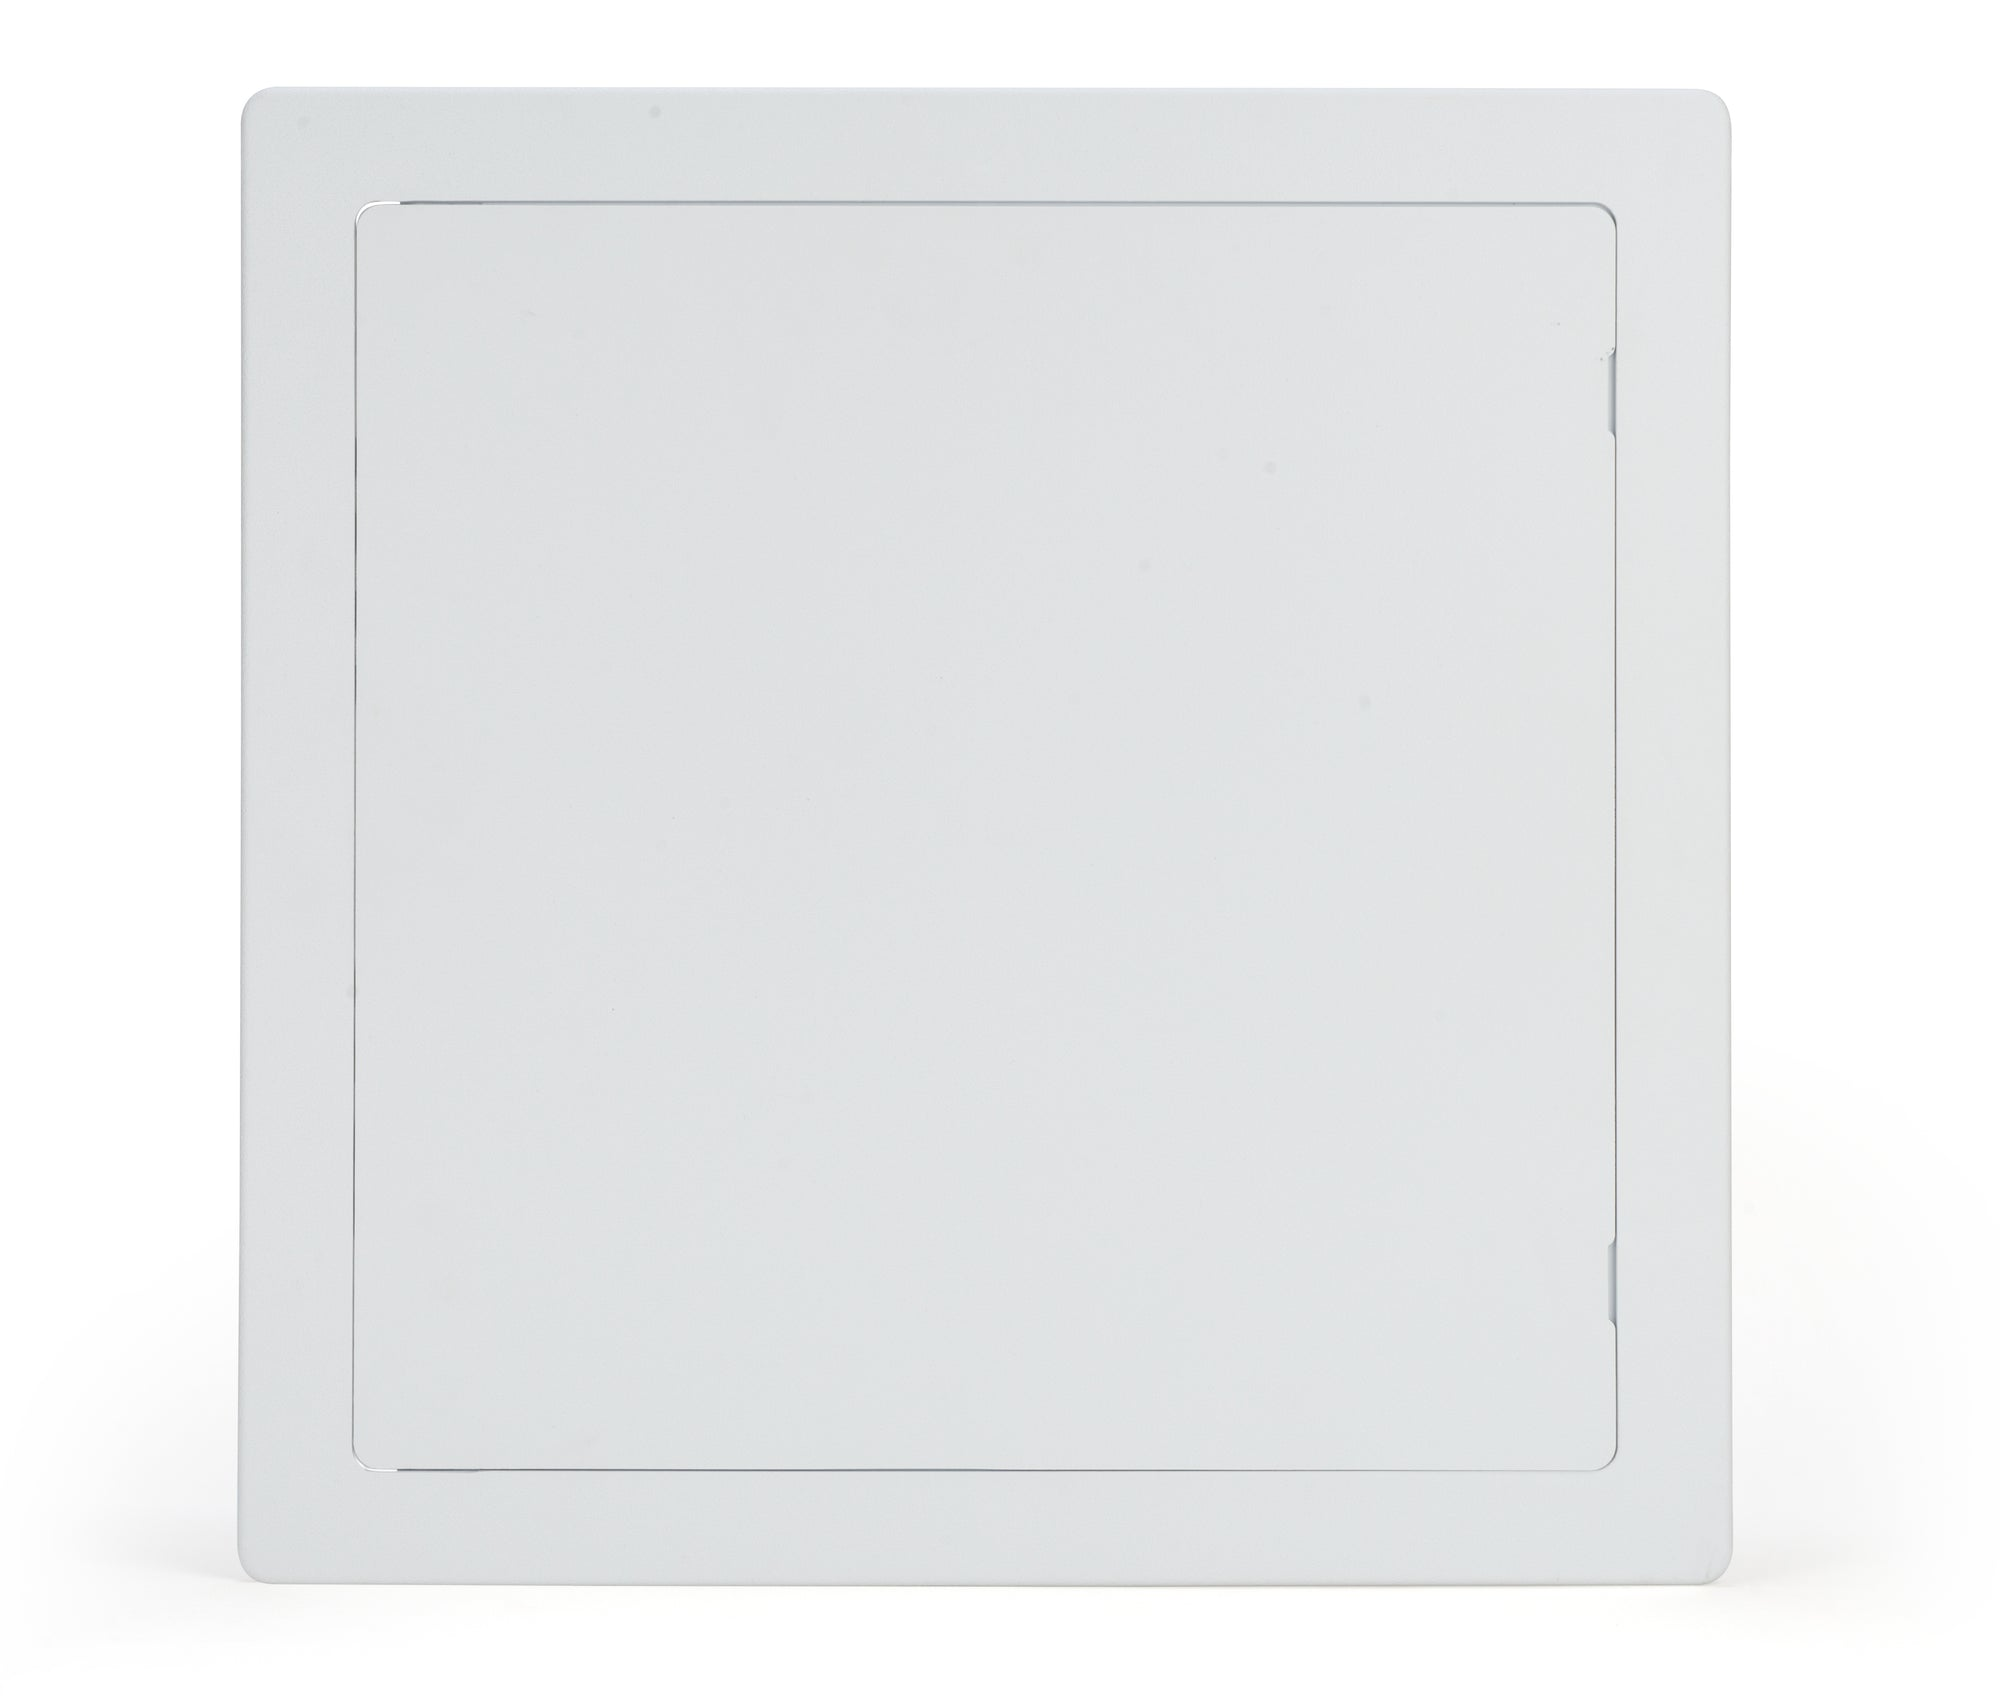 SENJU Drywall Plastic Access Panel